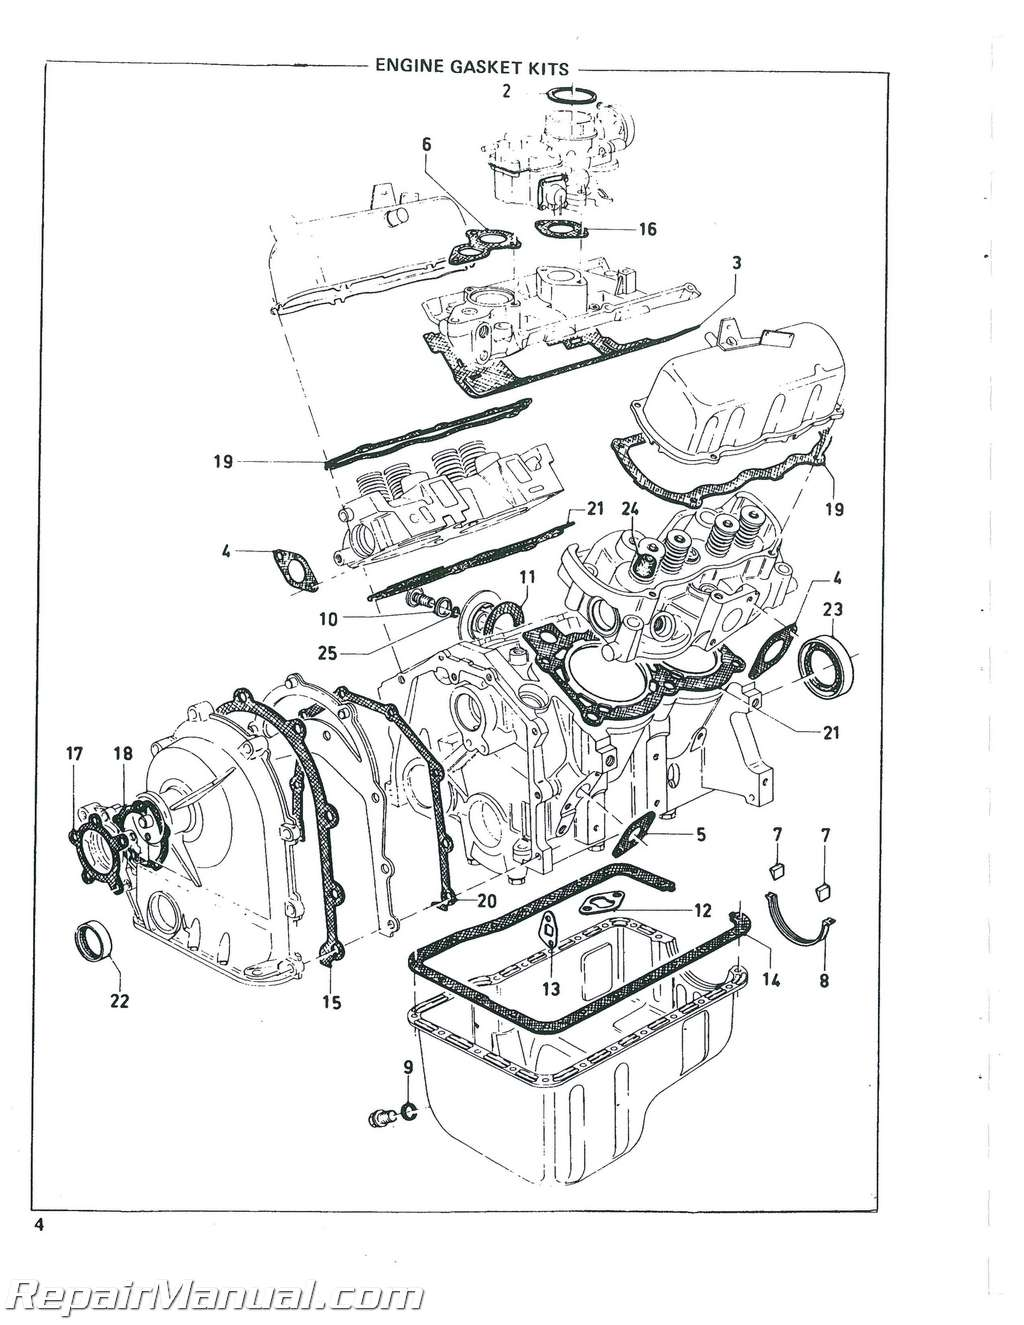 Ford Eng 104 V 4 Used In Various Skid Steers Parts Manual